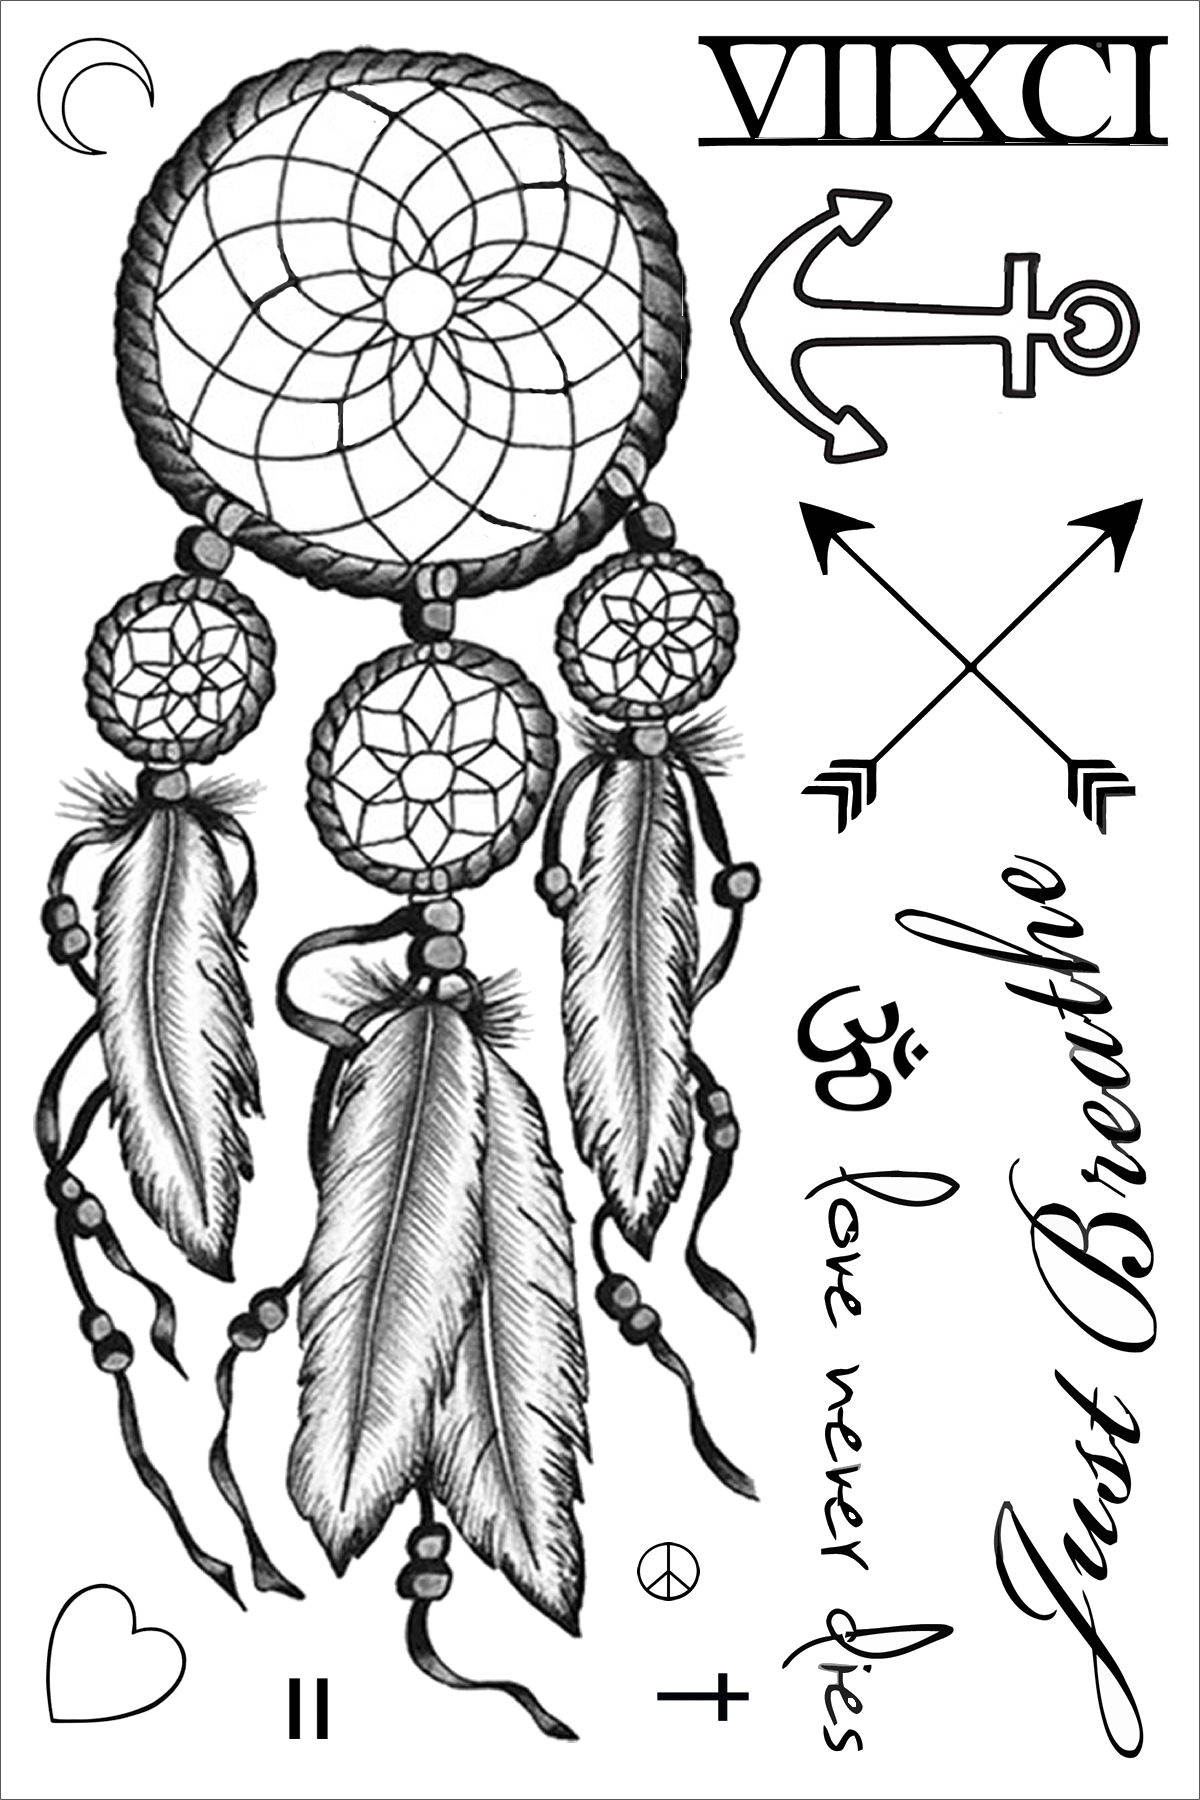 Miley Cyrus Dreamcatcher Temporary Tattoo Sheet of Temporary ...